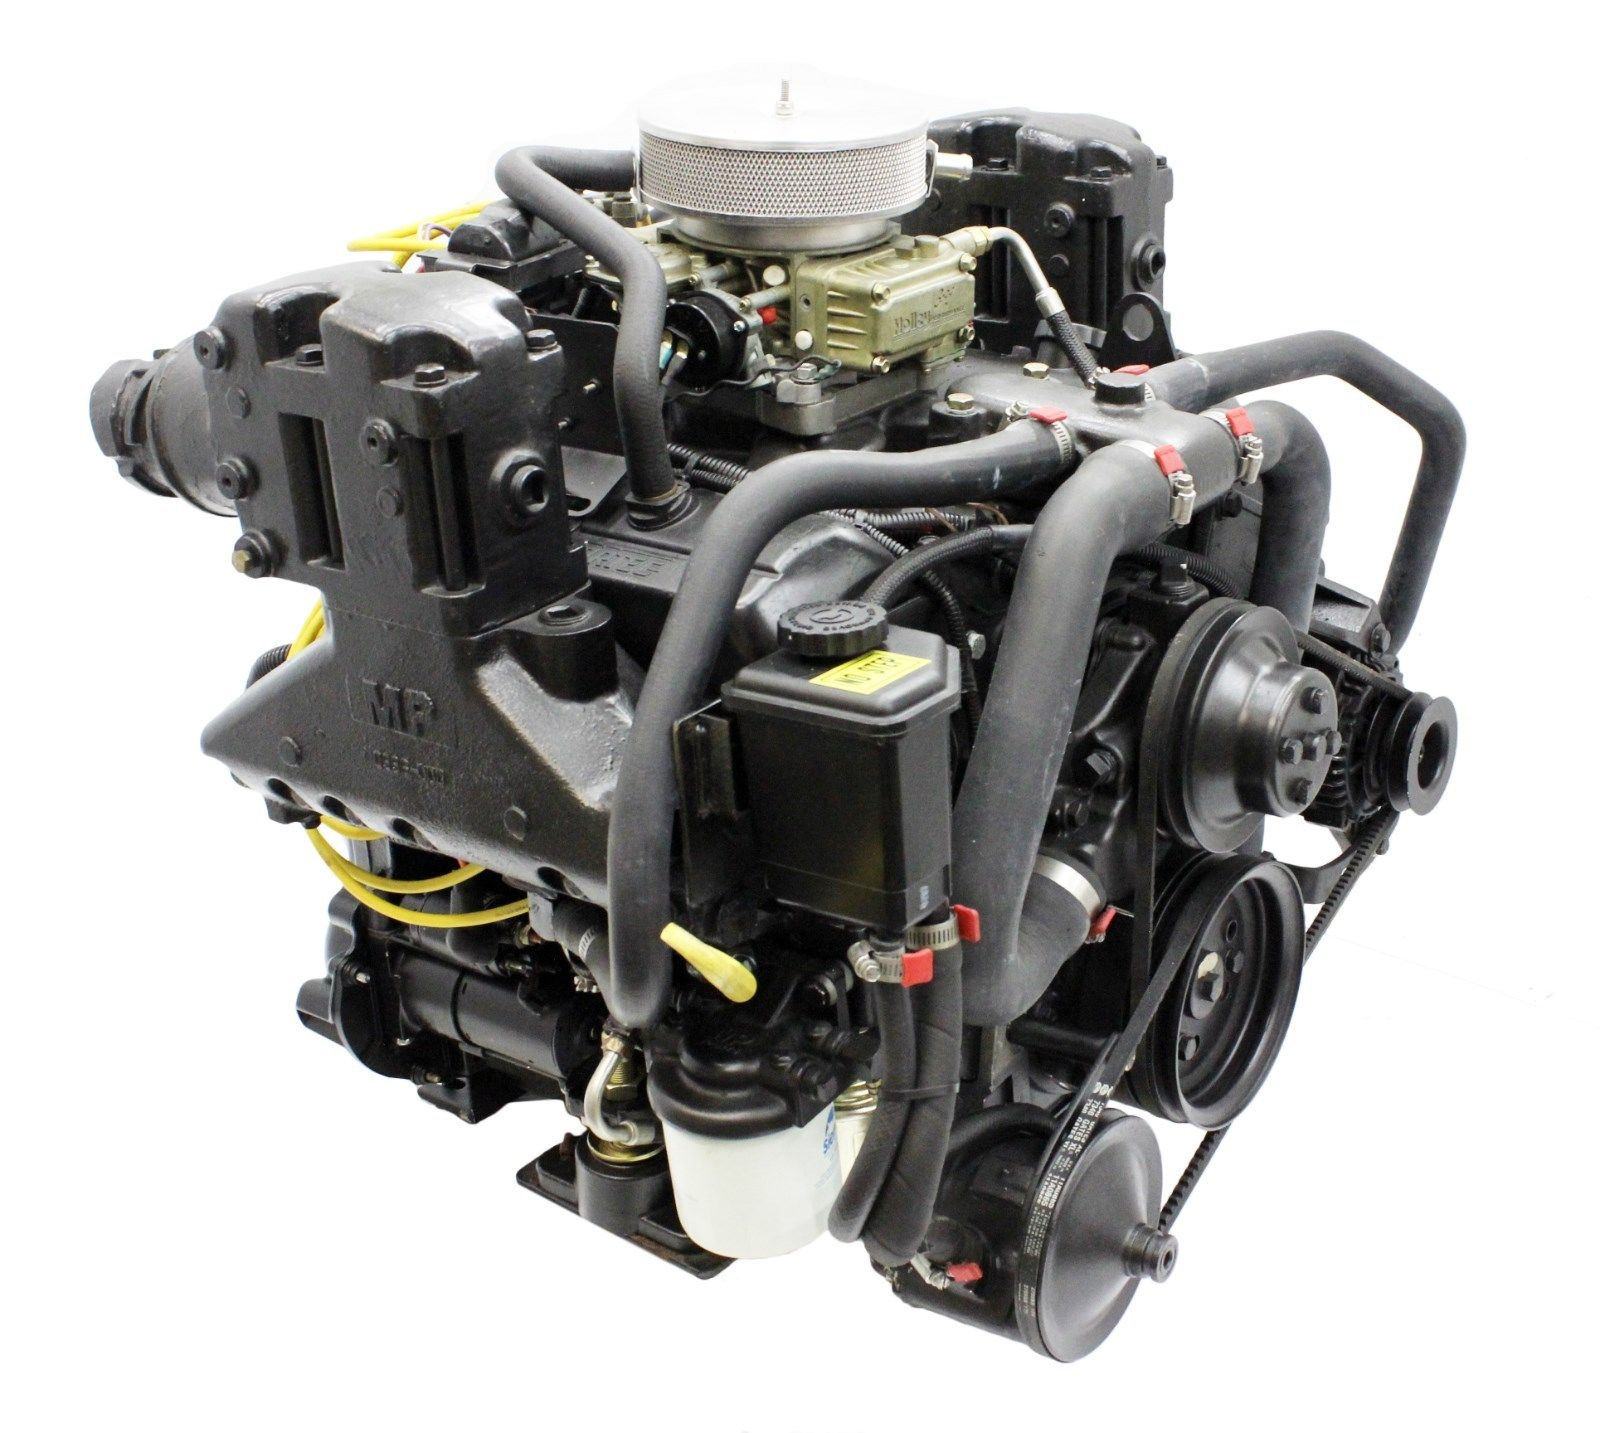 4.3L Vortec V6 4BBL New Boat Motor Engine 225hp For ...